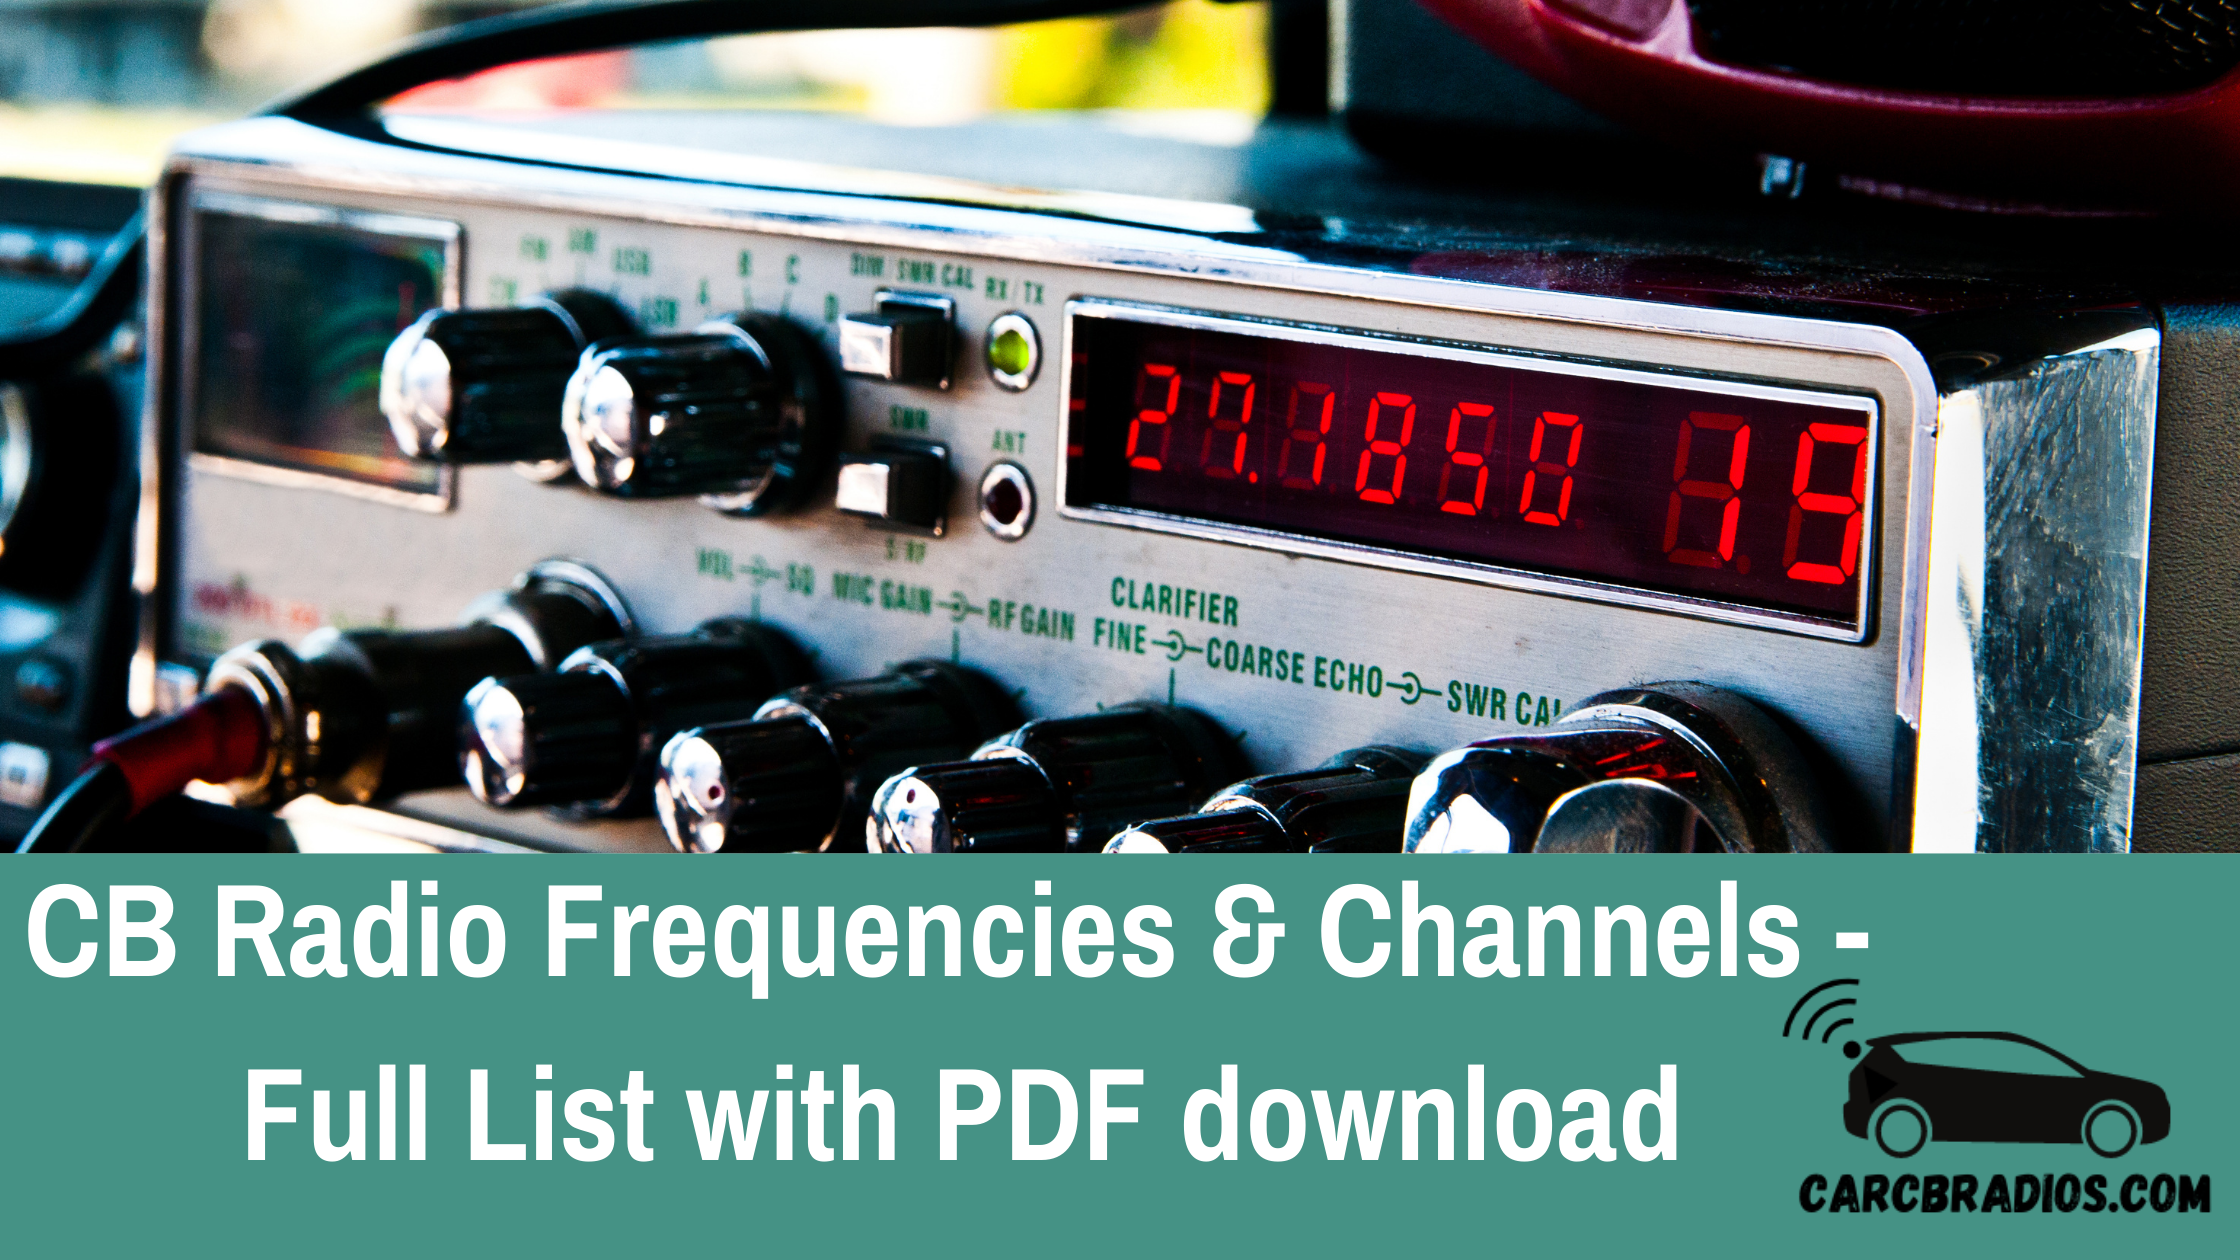 CB Radio Frequencies & Channels -  Full List with PDF download